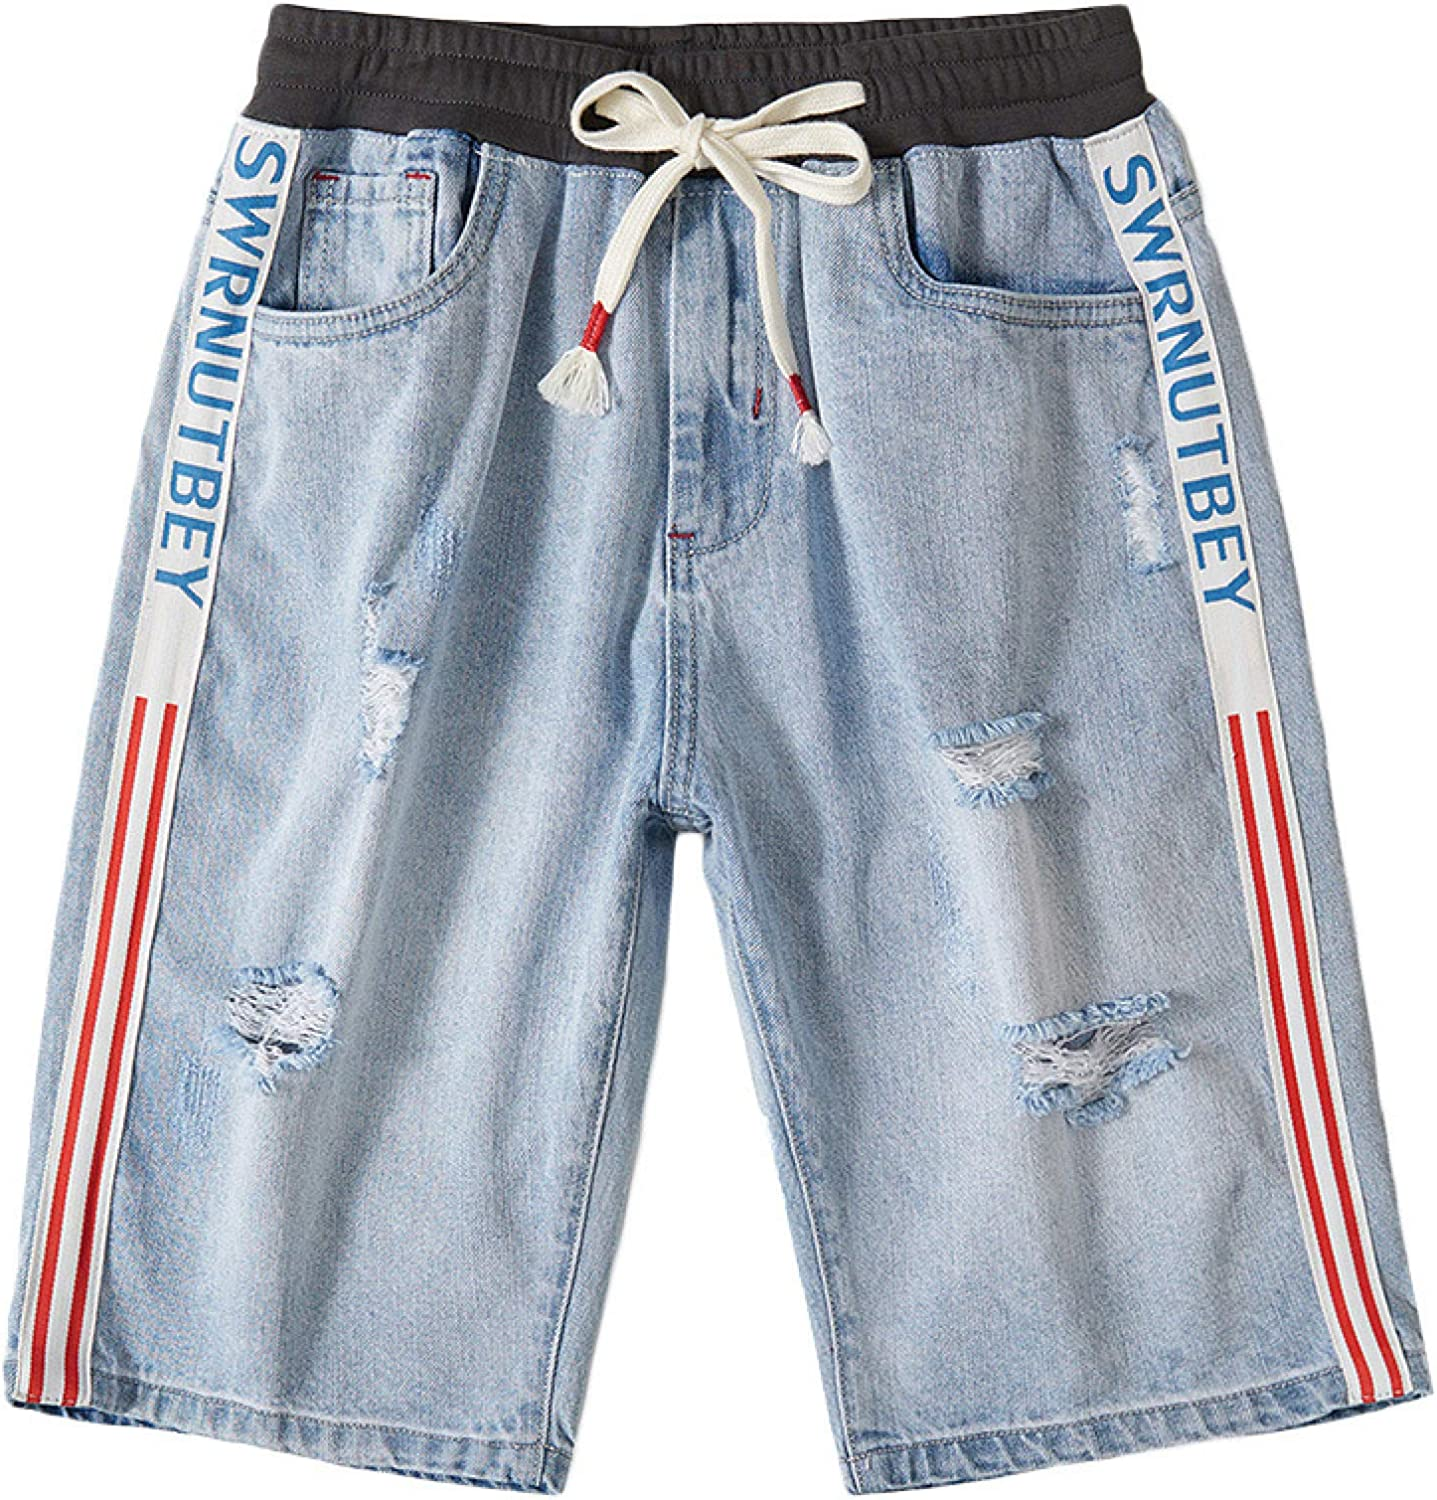 Generico Men's Shorts Spring and Summer Broken Max 47% OFF Elastic Selling and selling Wais Hole